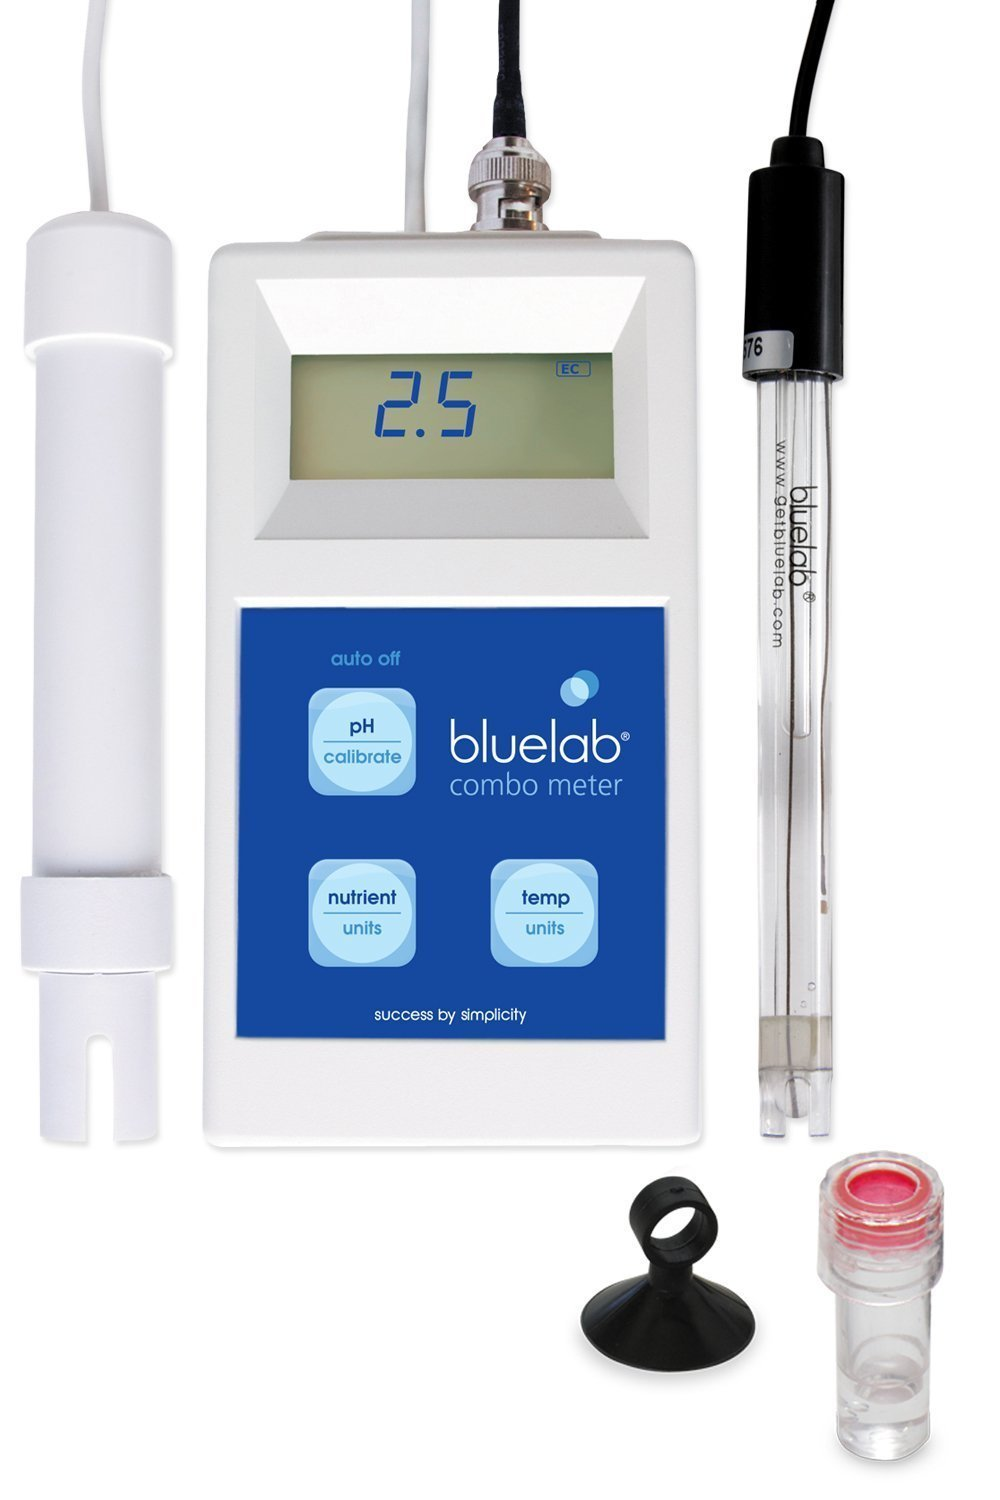 Bluelab Combo Meter (pH, Conductivity, and Temperature) 716441